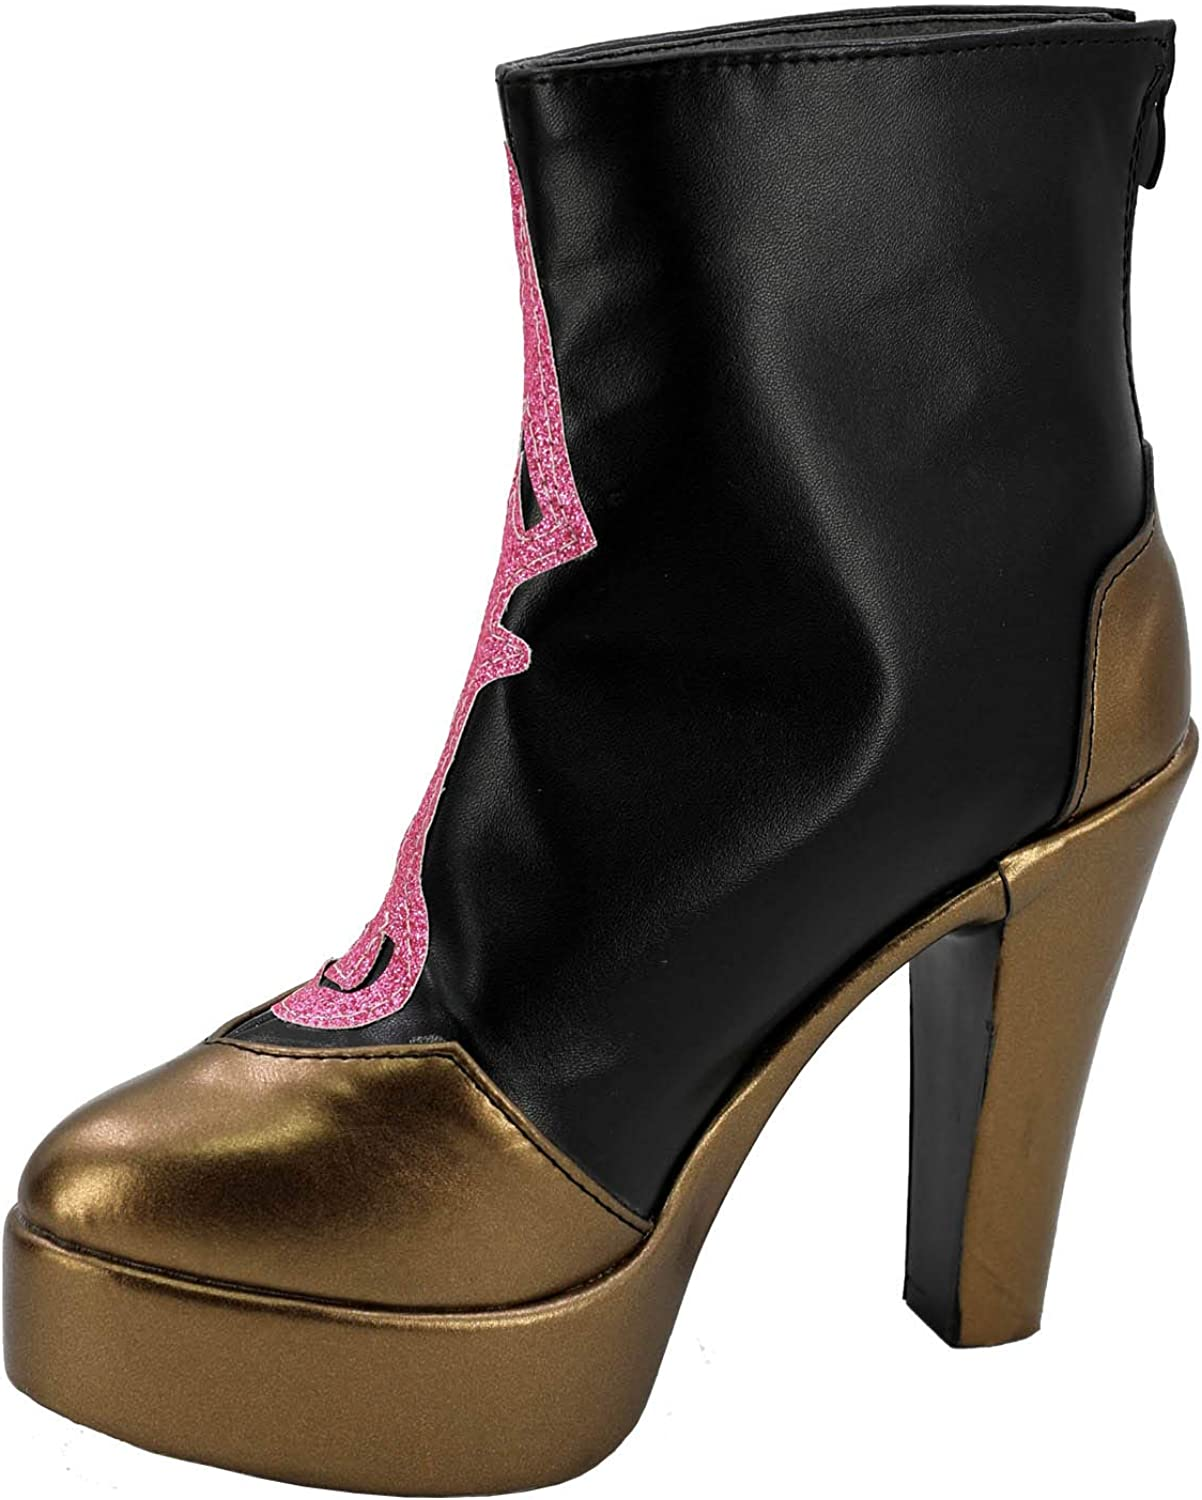 GOTEDDY Women Girl Halloween Cosplay Shoes Black Long Boots Costume Accessories